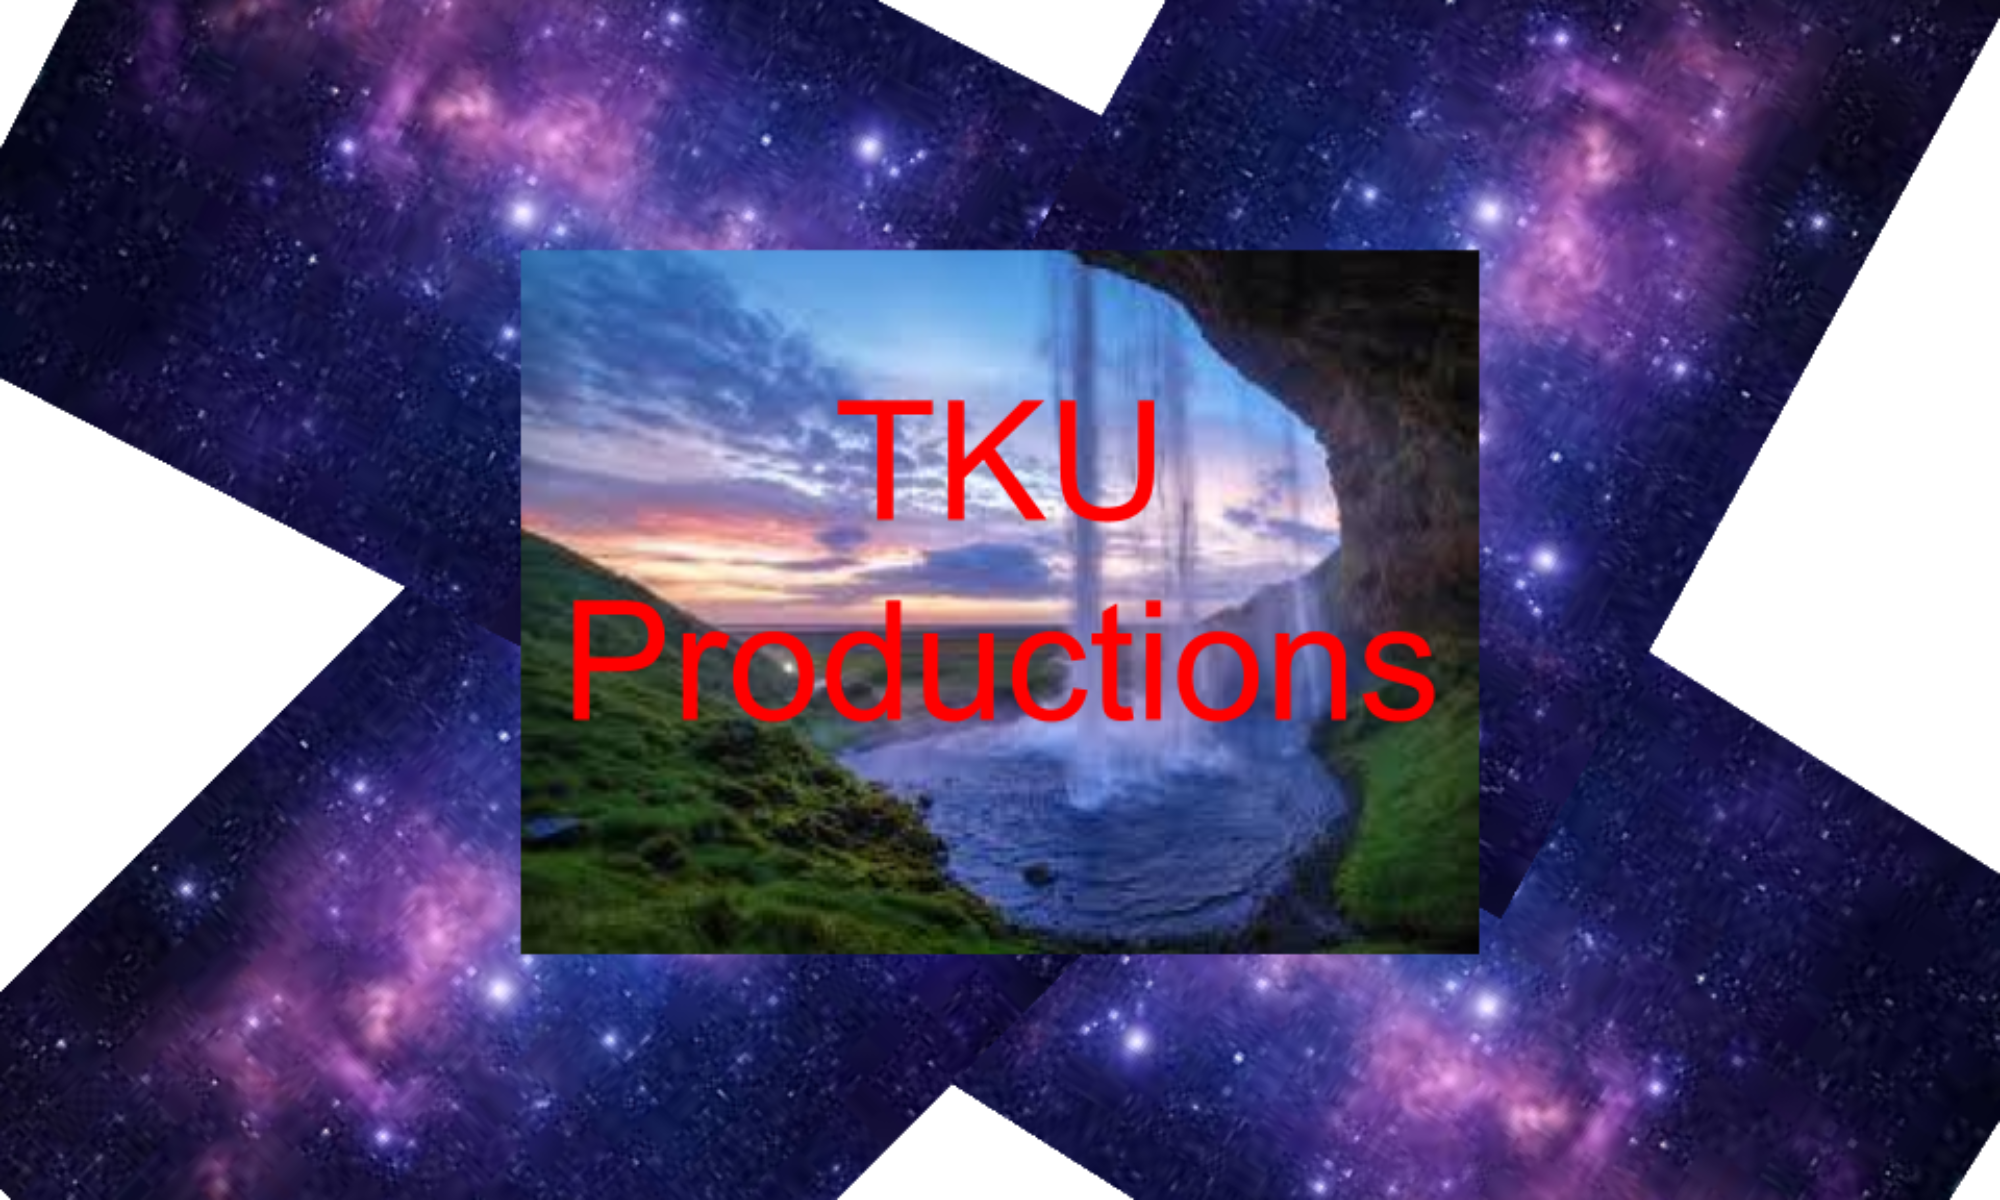 TKU Productions Website